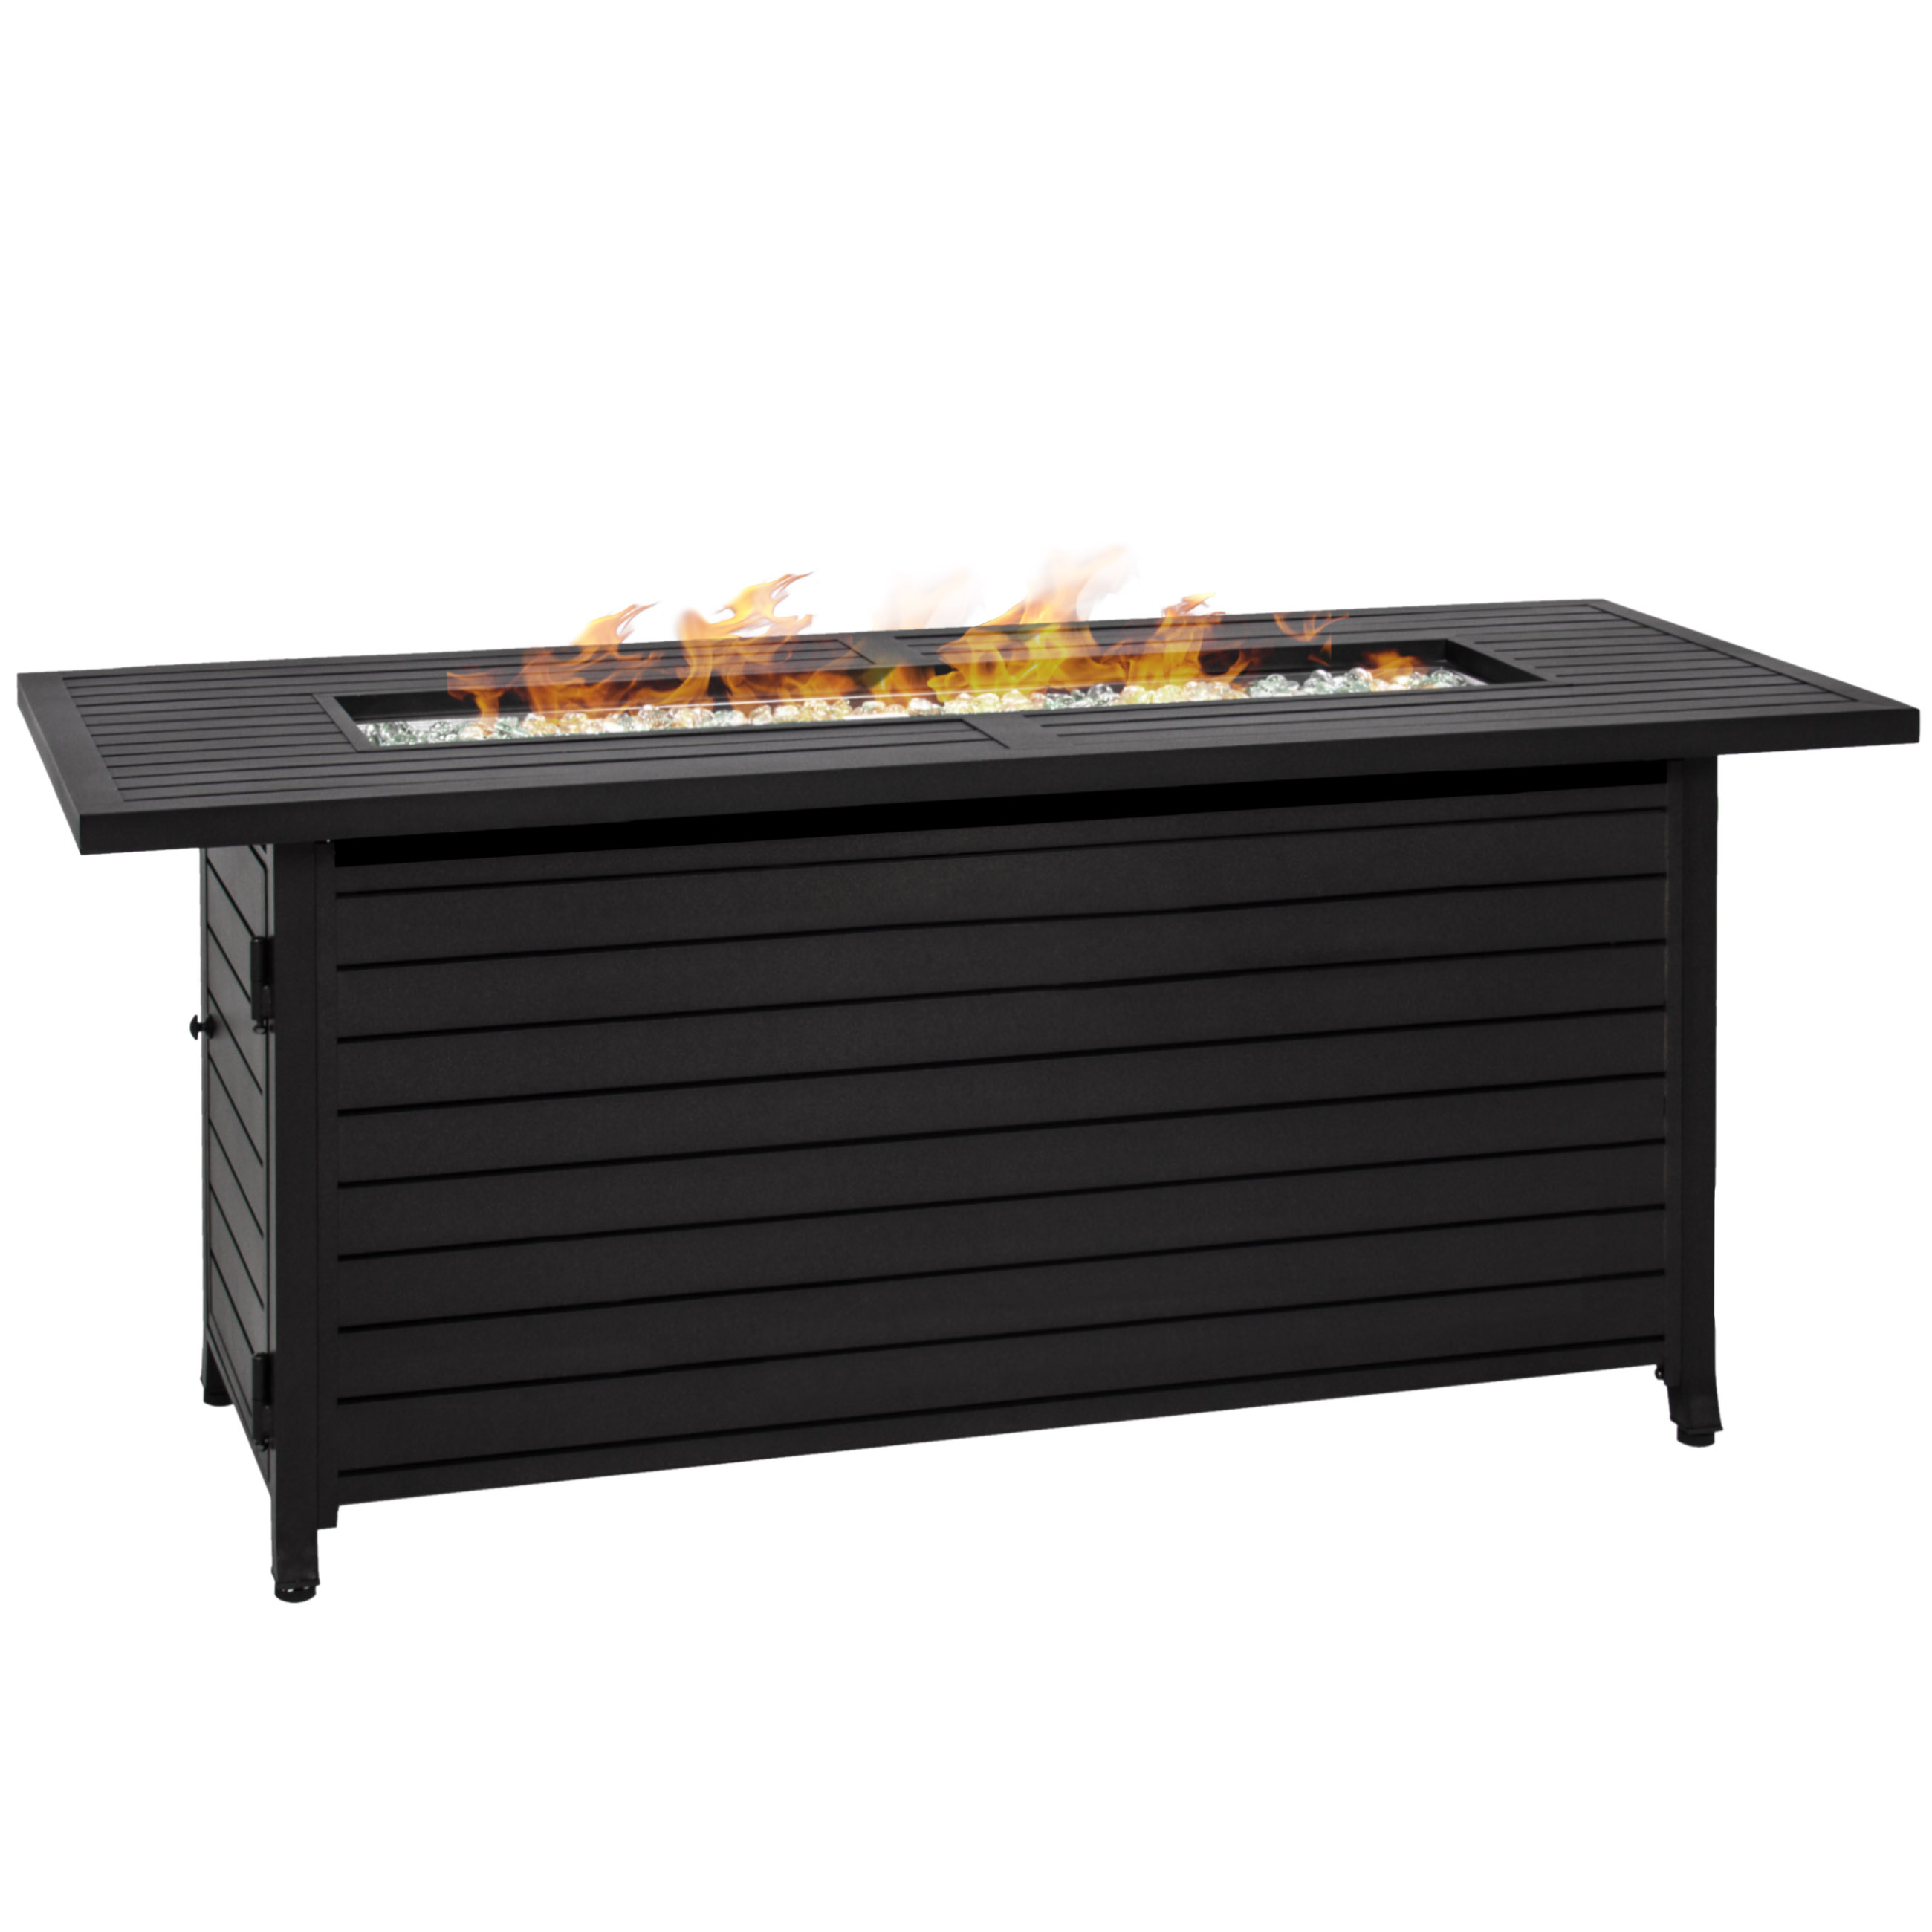 Best Choice Products 57in Rectangular Extruded Aluminum Gas Fire Pit Table w/ Cover and Glass Beads - Black